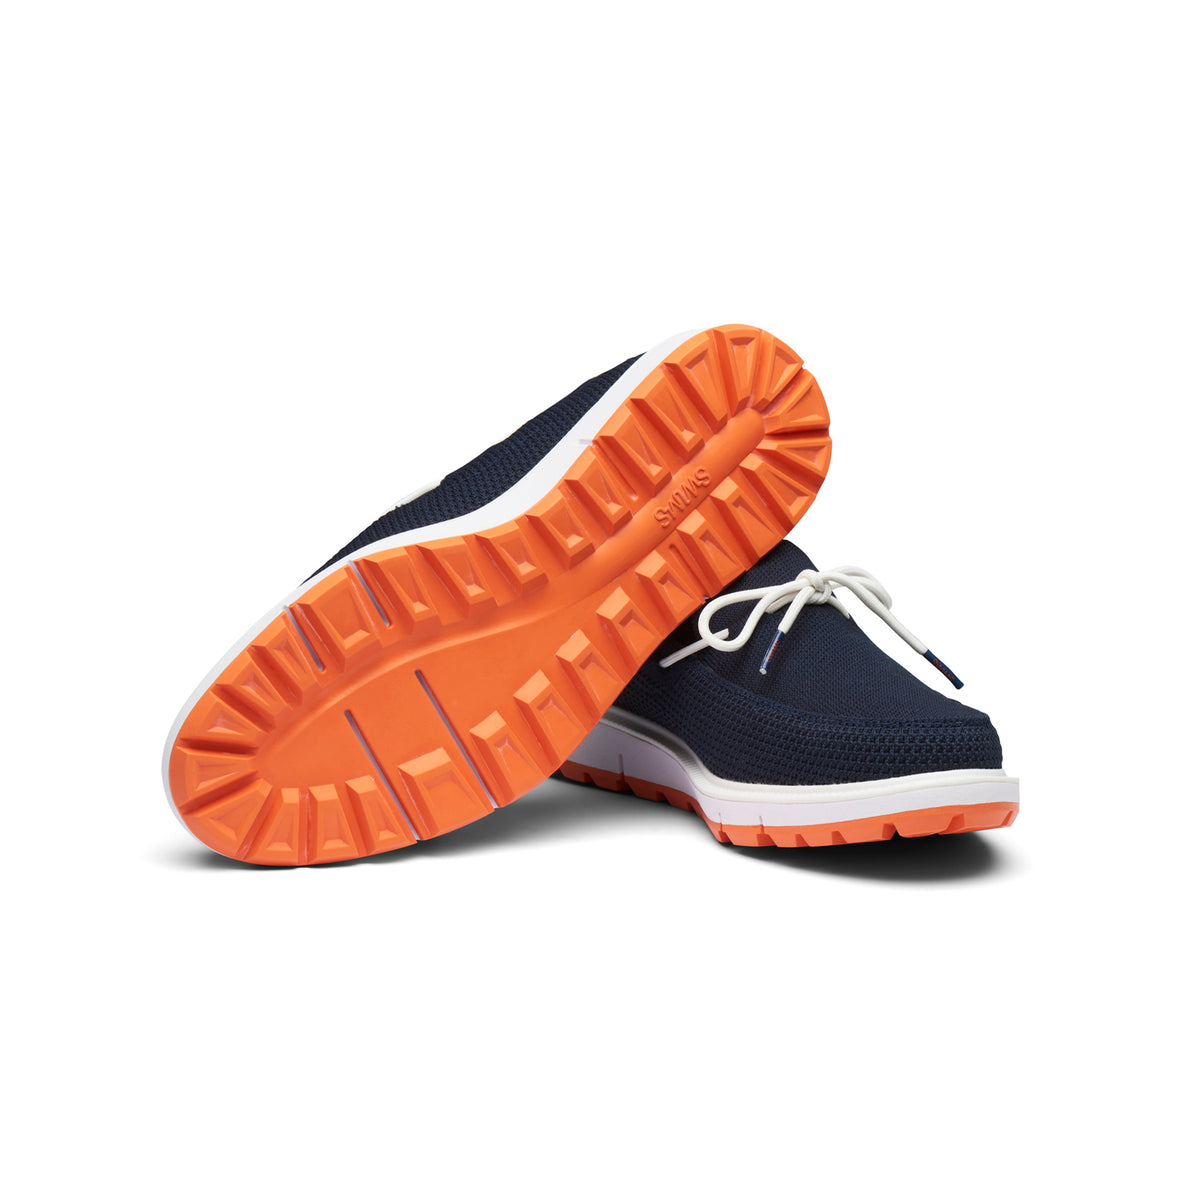 Motion Knit Camp Moccasin - background::white,variant::Navy/White/Orange